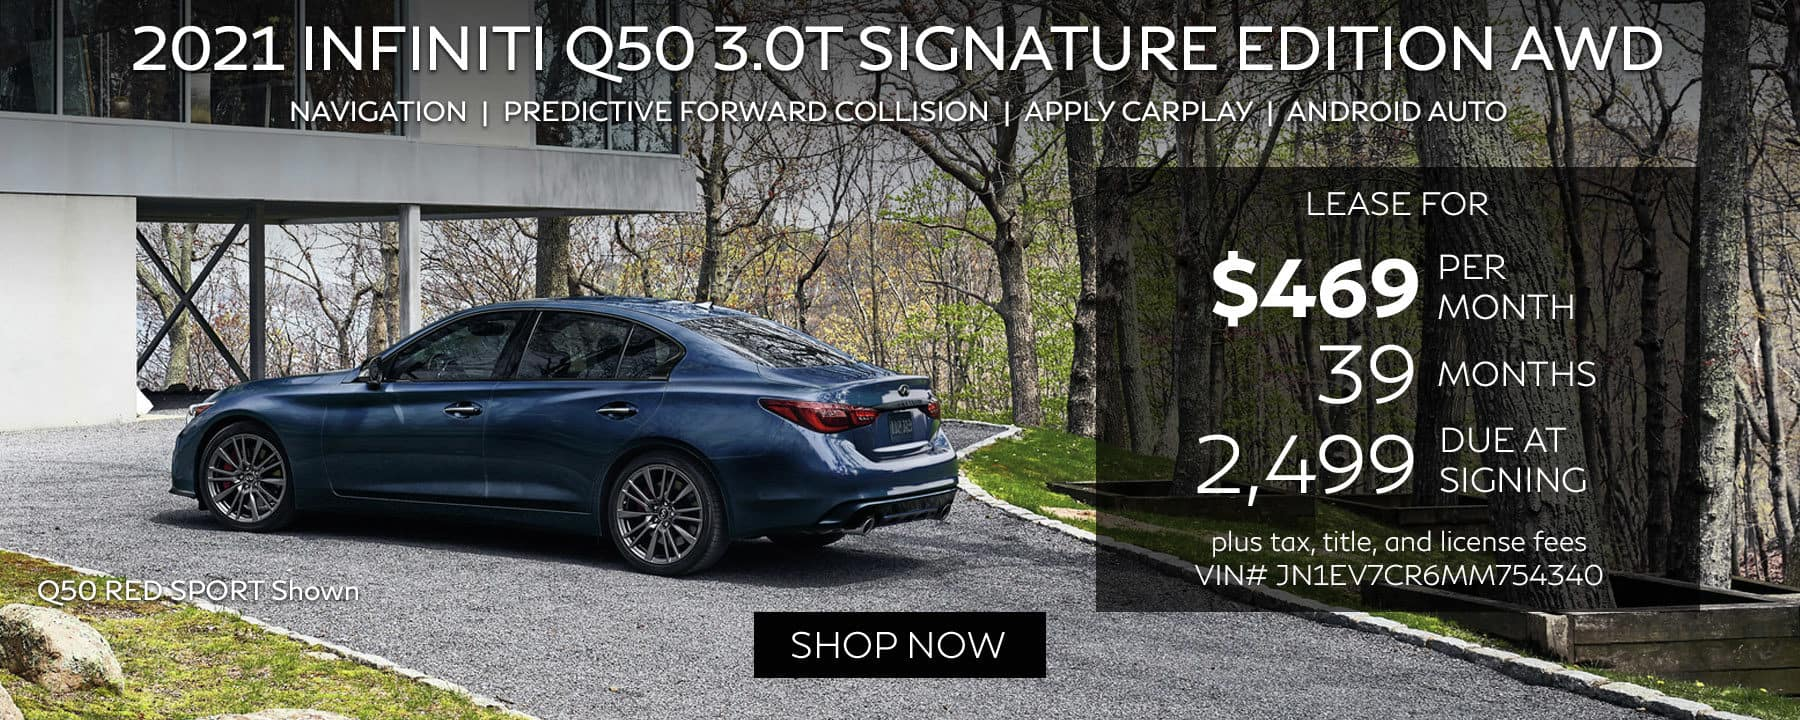 Lease a 2021 Q50 3.0T SIGNATURE EDITION AWD for $469 per month with $2,499 due at signing.